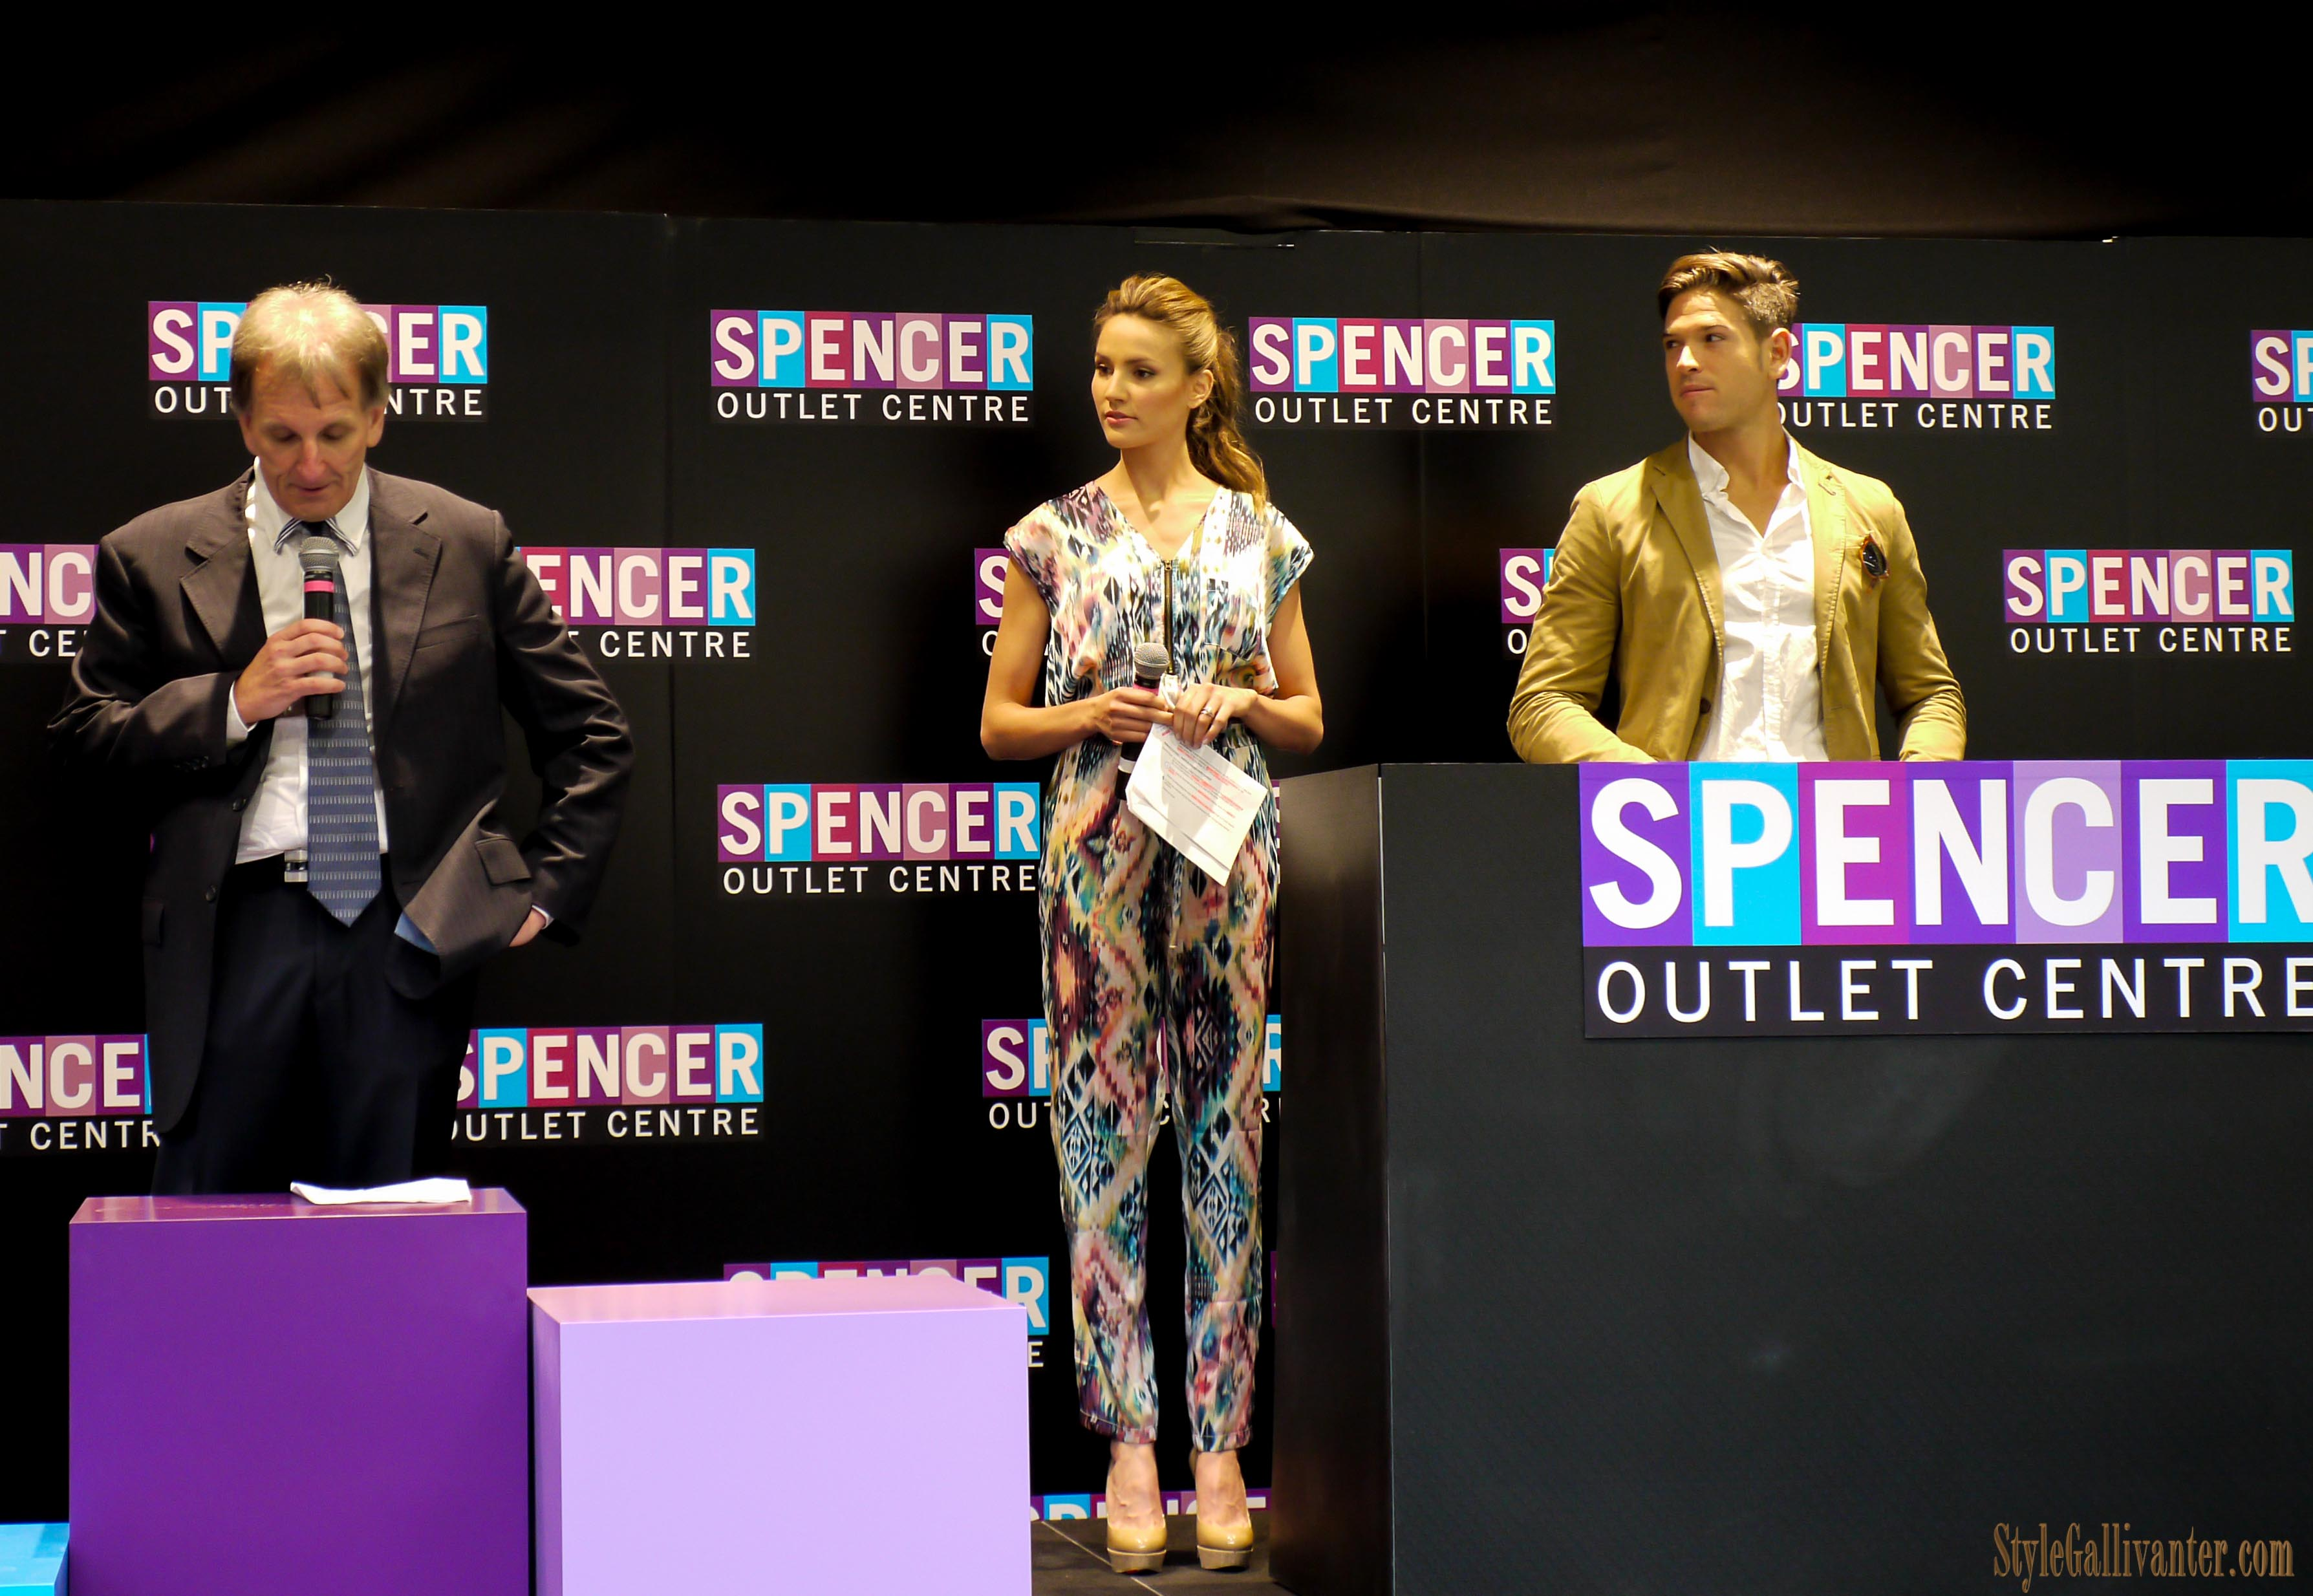 spencer-outlet-launch_spencer-outlet-centre_didier-cohen-fashion_rachael-finch-spencer-outlet-launch_rachael-finch-fashion-style_trade-secret-spencer-outlet_trade-secret-blogger-3